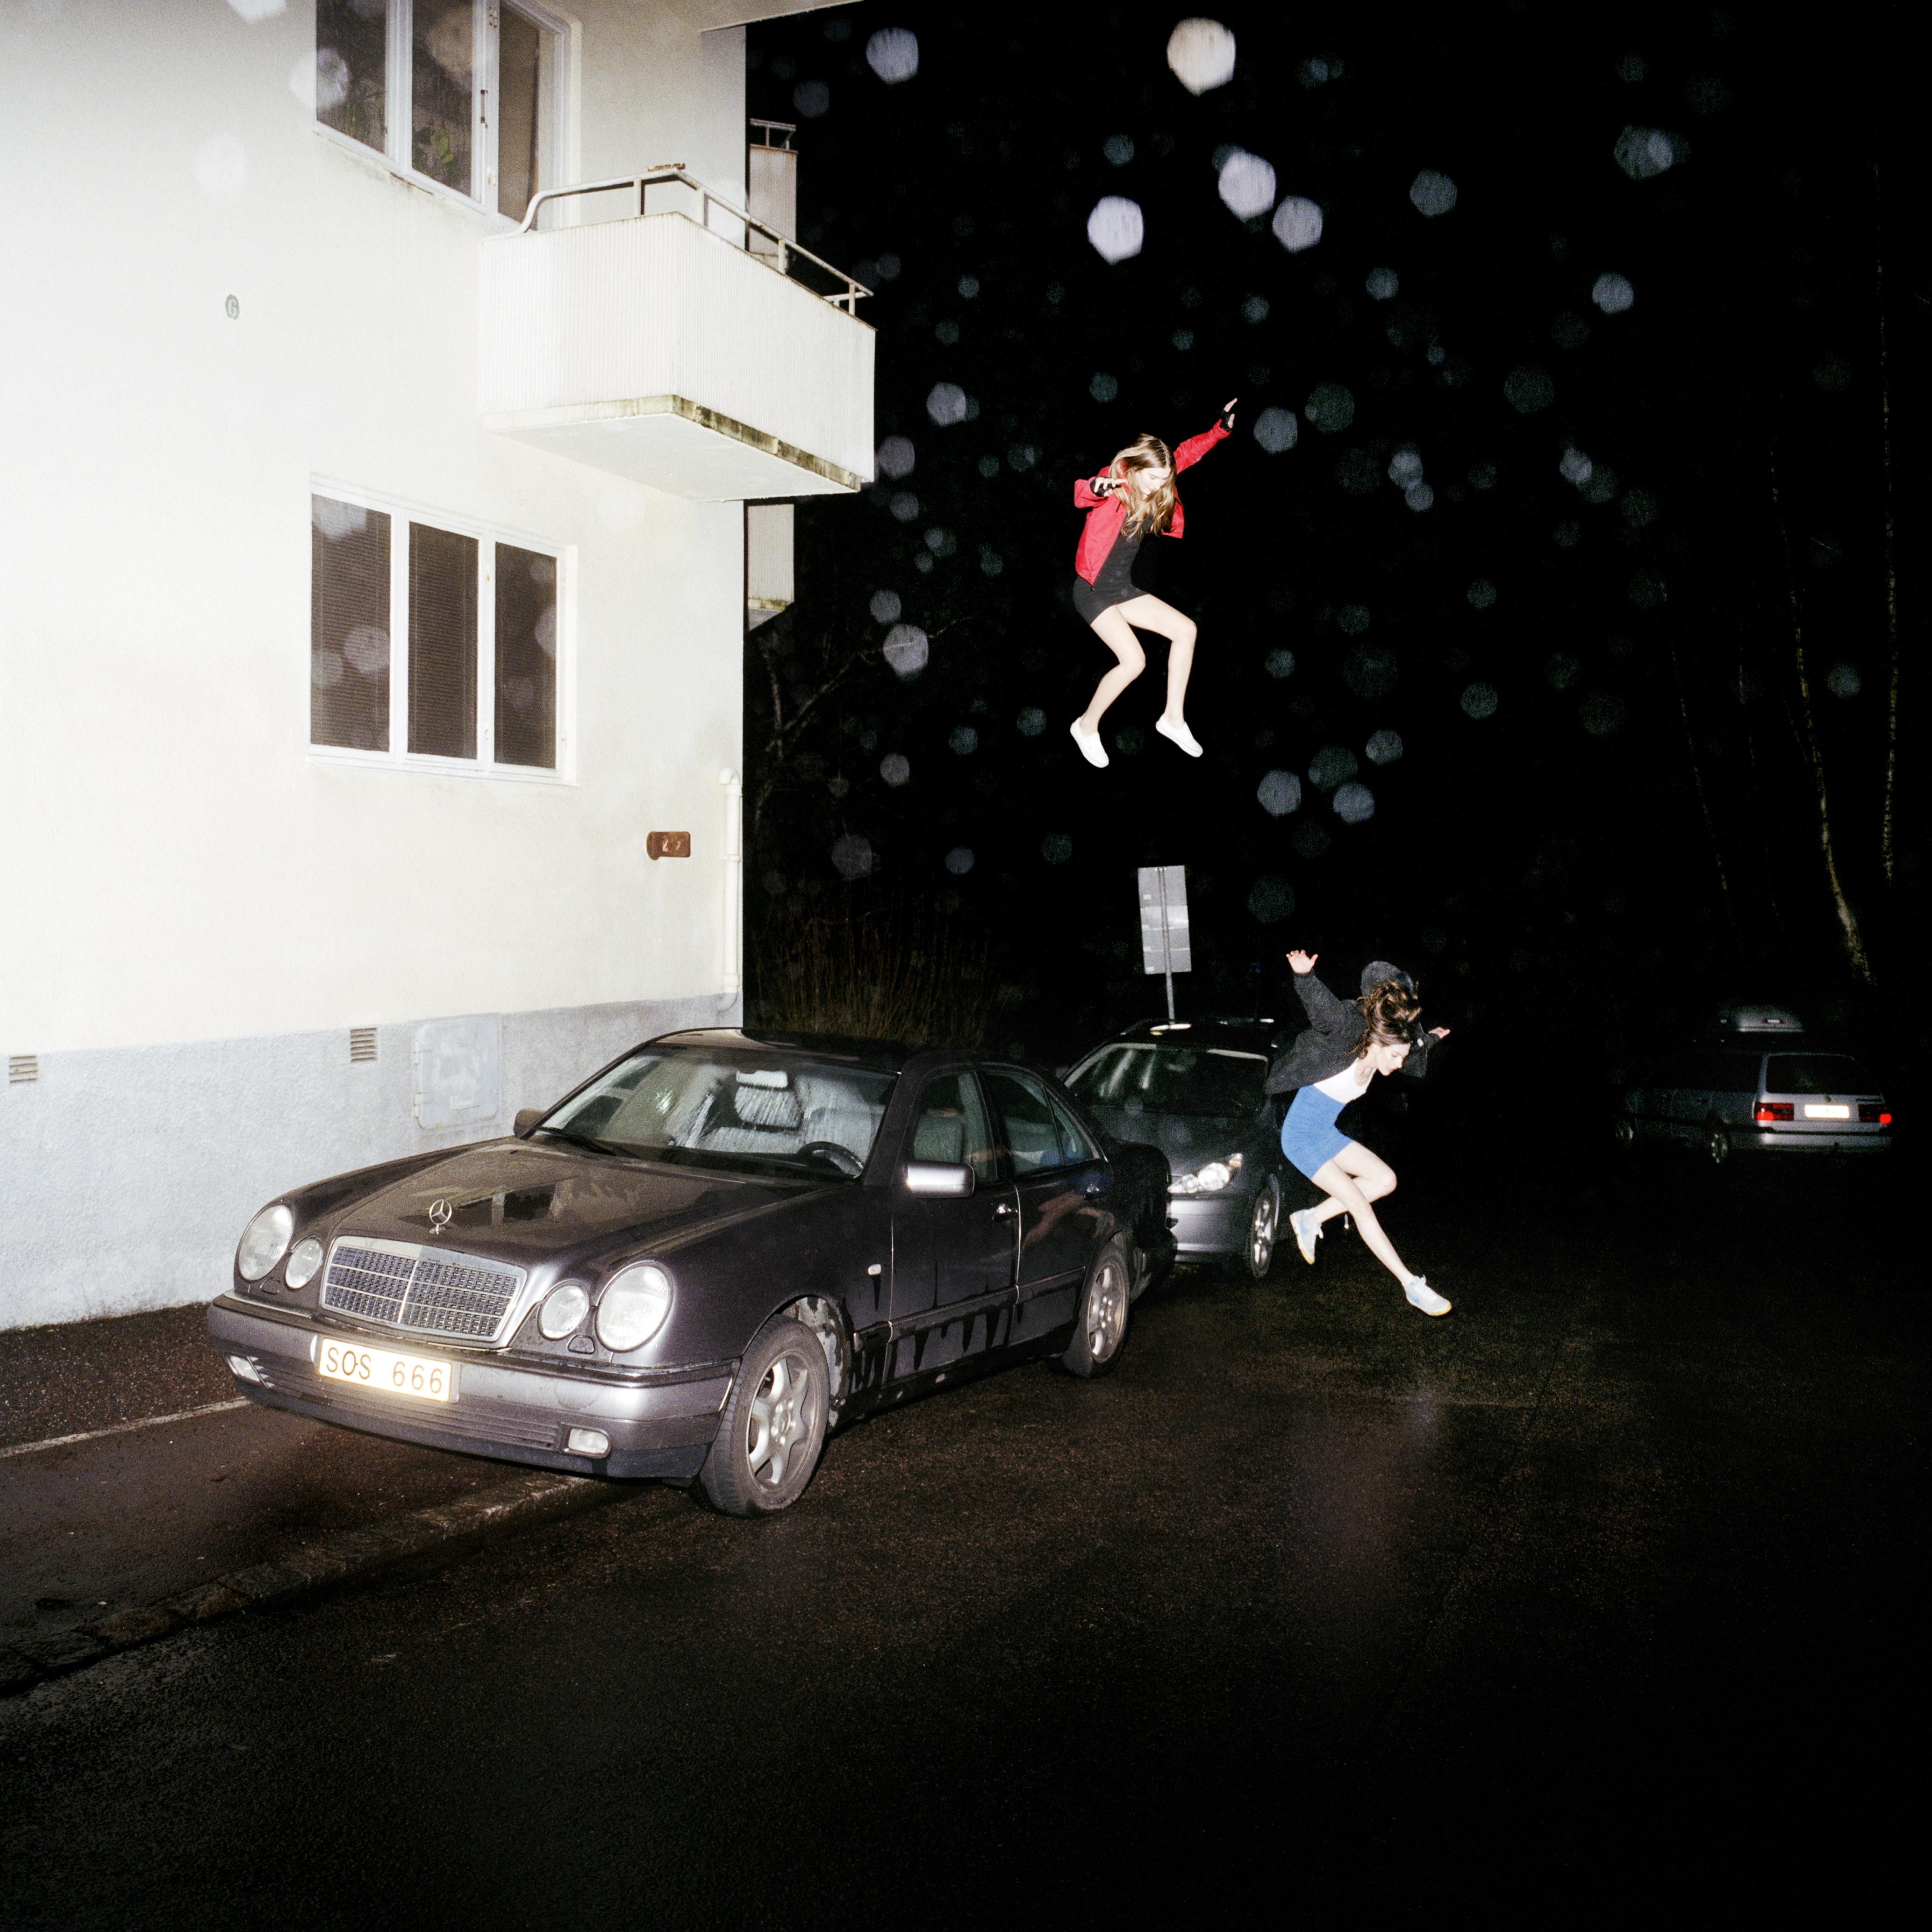 Art for Can't Get It Out by Brand New